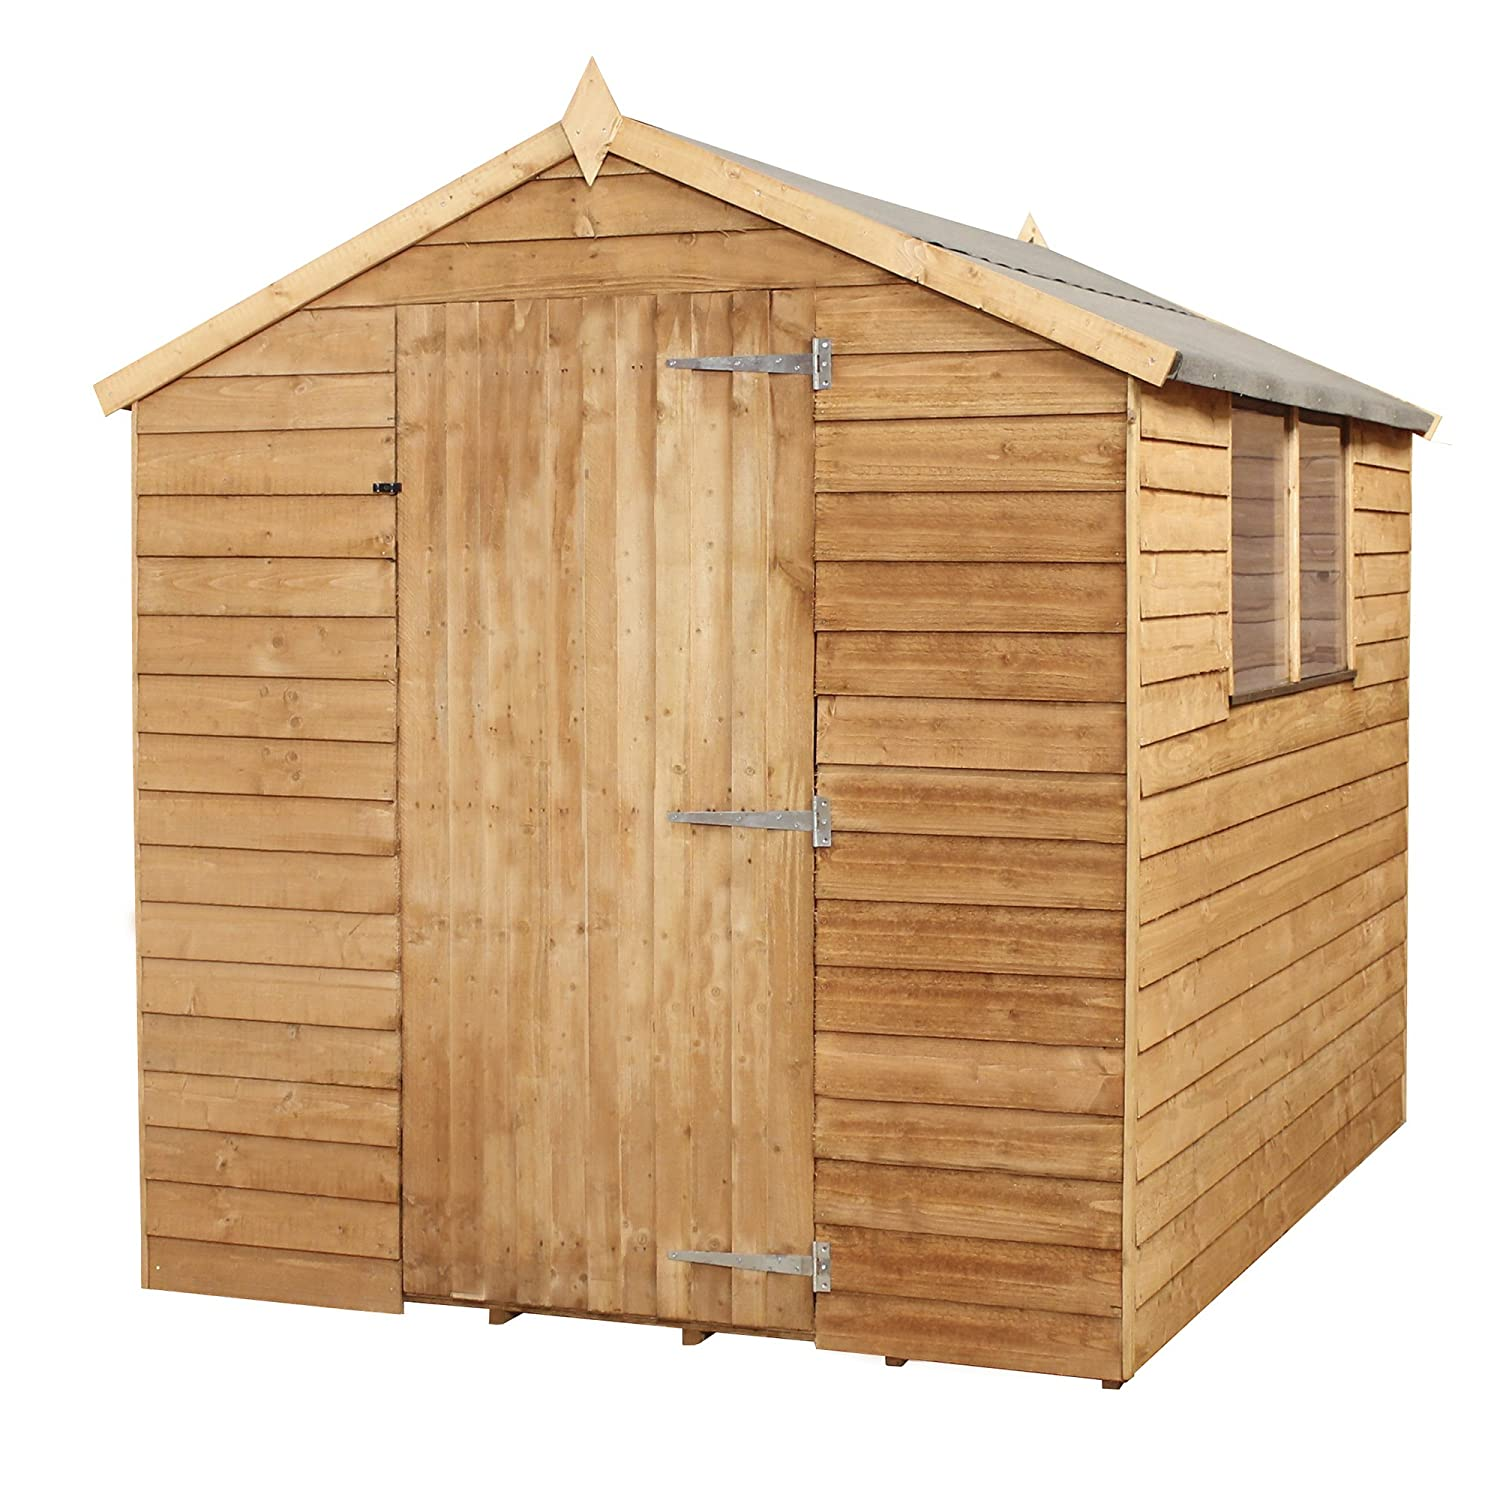 Waltons Est 1878 8x6 Wooden Garden Storage Shed Overlap Construction Dip Treated With 10 Year Guarantee With Windows Single Door Apex Roof Roof